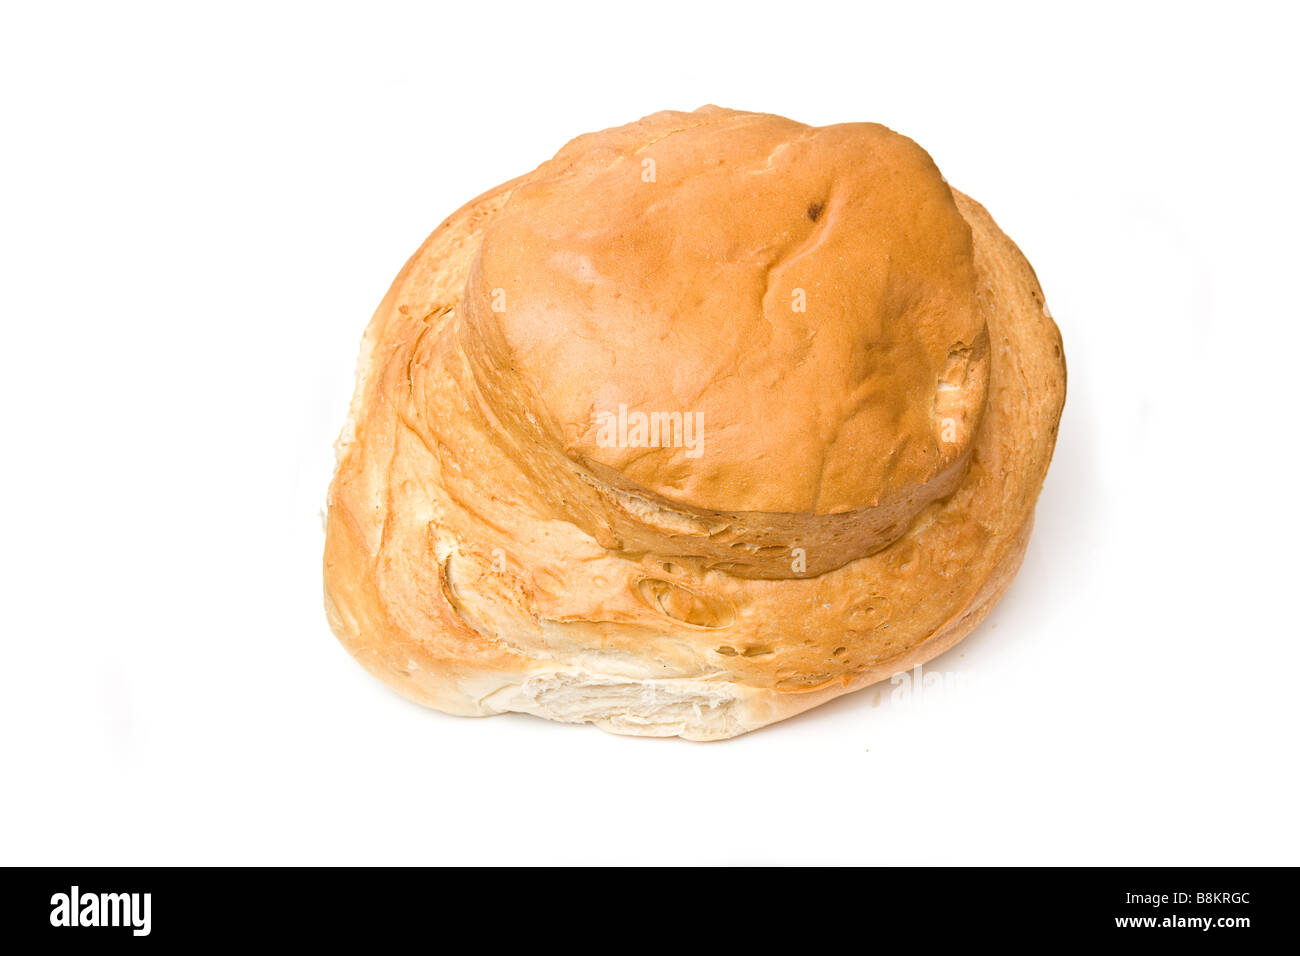 Bloomer loaf of bread Isolated on a white studio background - Stock Image